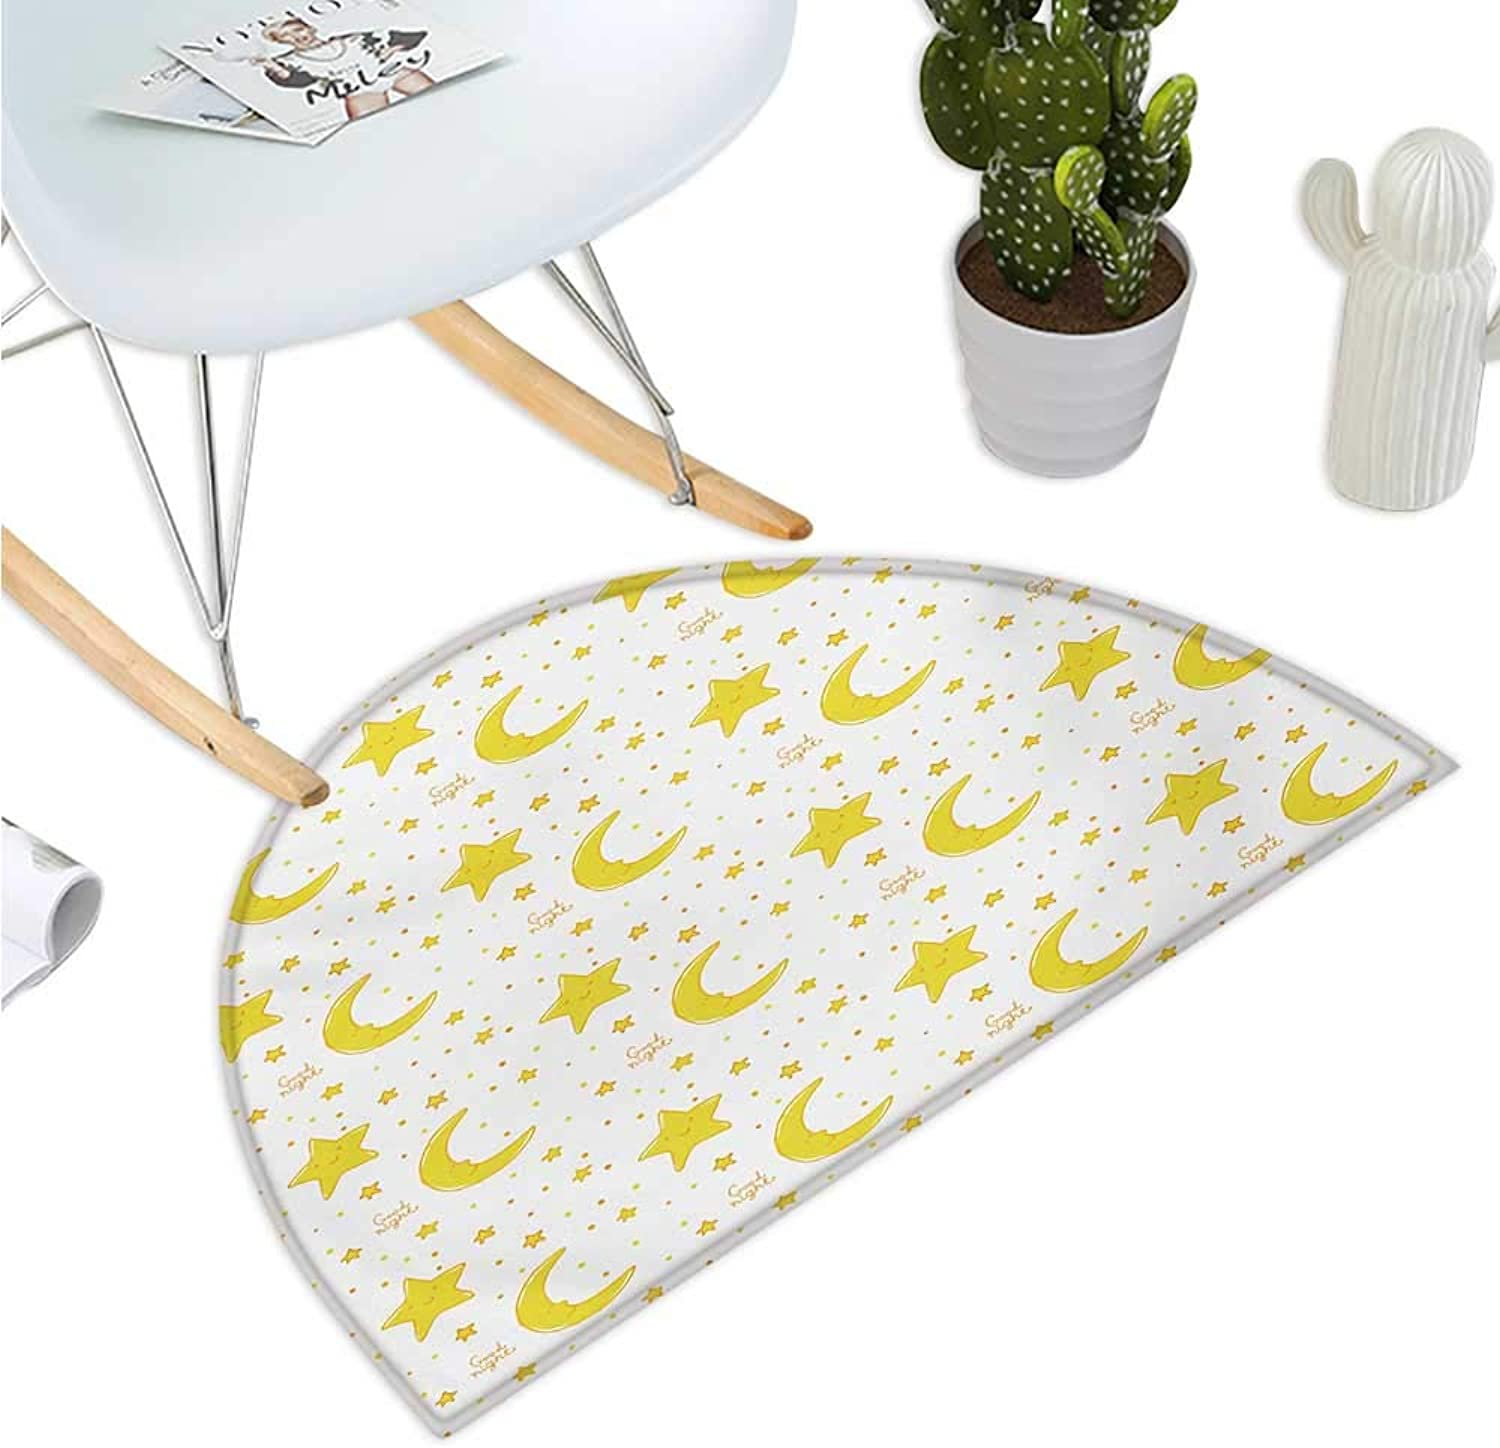 Yellow and White Semicircle Doormat Sleeping Crescent Moon and Stars Pattern Night Time Cartoon Illustration Entry Door Mat H 39.3  xD 59  Yellow White